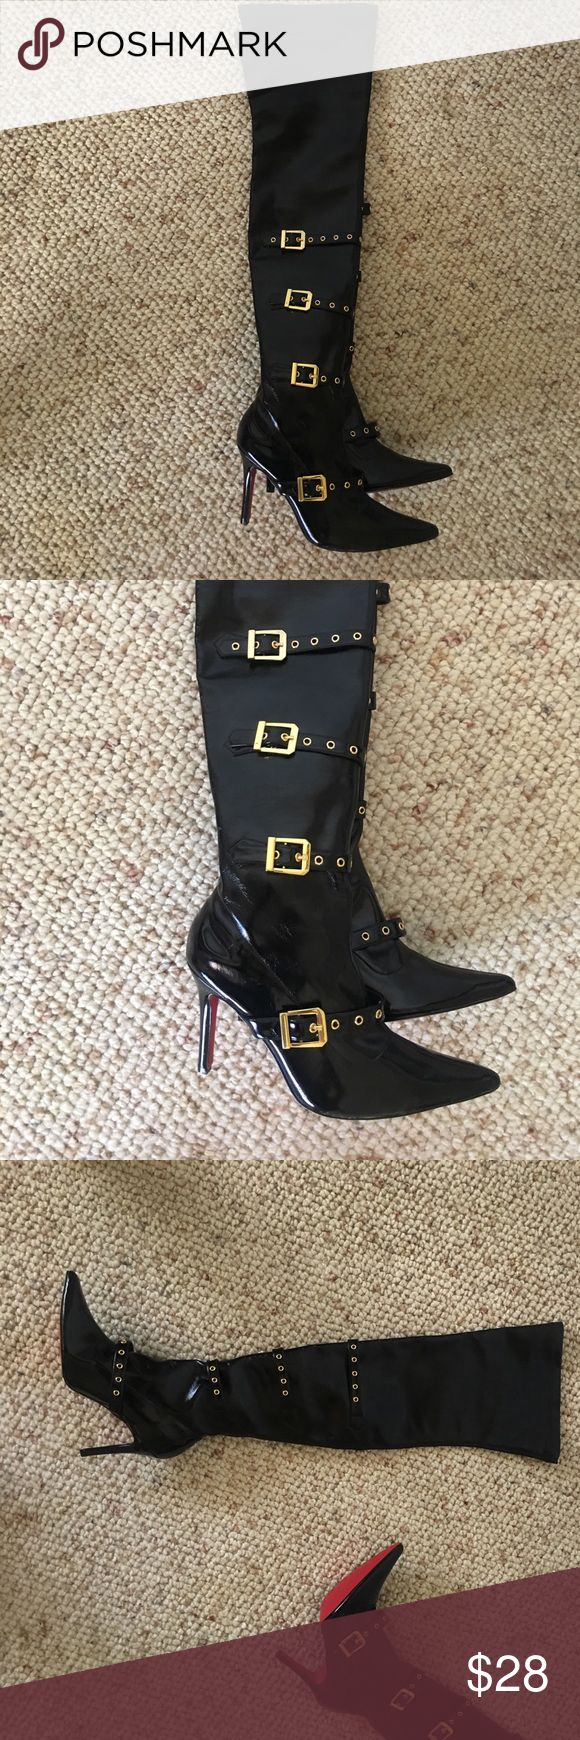 Colin Stuart Knee Boots Sexy Colin Stuart Patent leather black boots excellent condition size 7 Very fun... Colin Stuart Shoes Over the Knee Boots